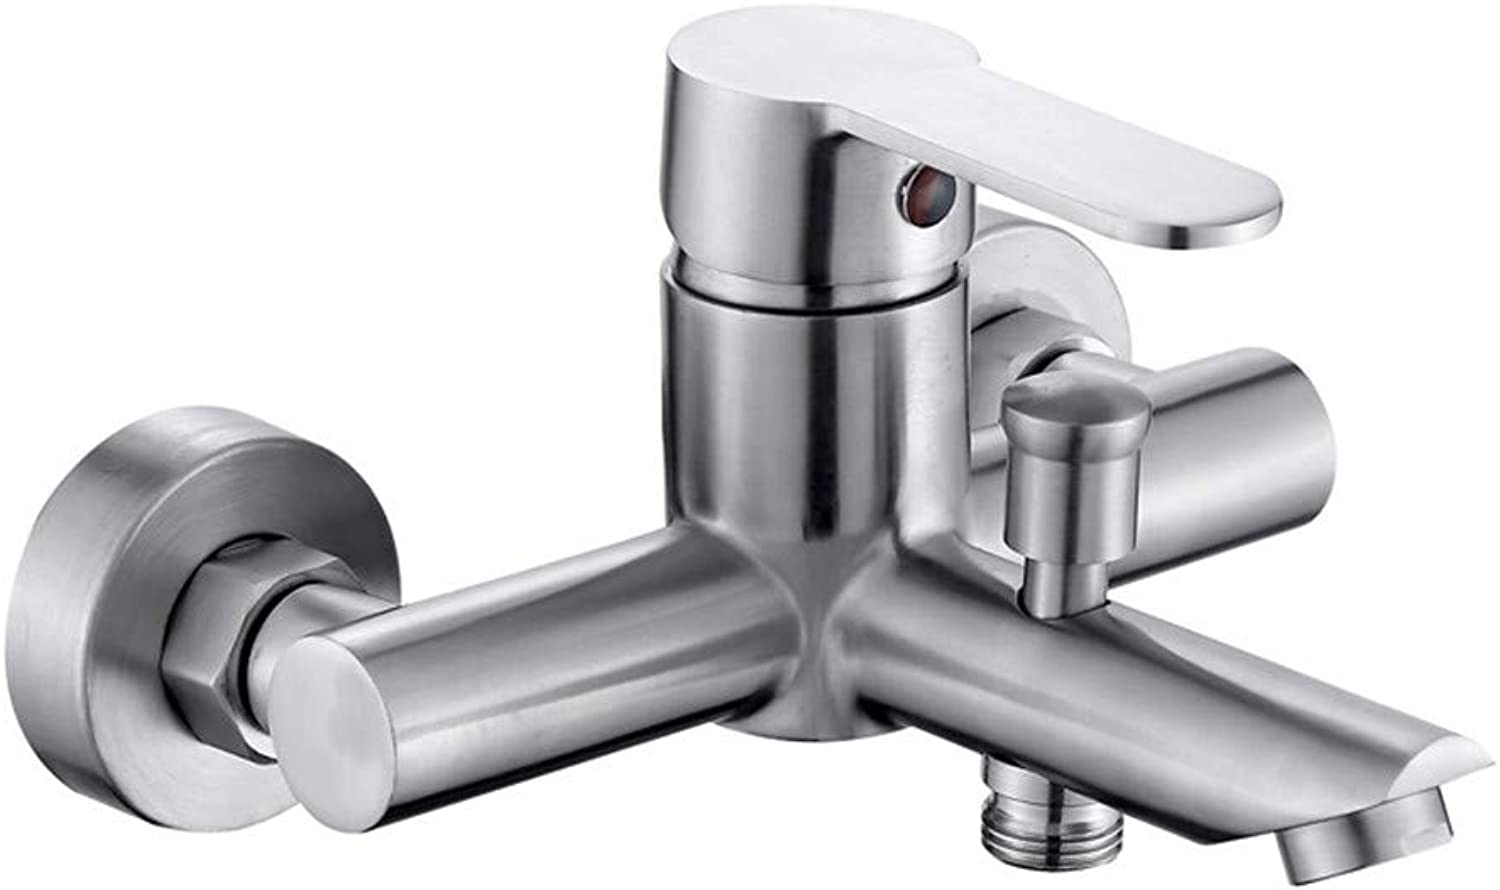 LHY BATHLEADER Shower Faucet Bathtub Faucet, Contemporary Brushed Tub And Shower Ceramic Valve Bath Shower Mixer Taps Single Handle Two Holes